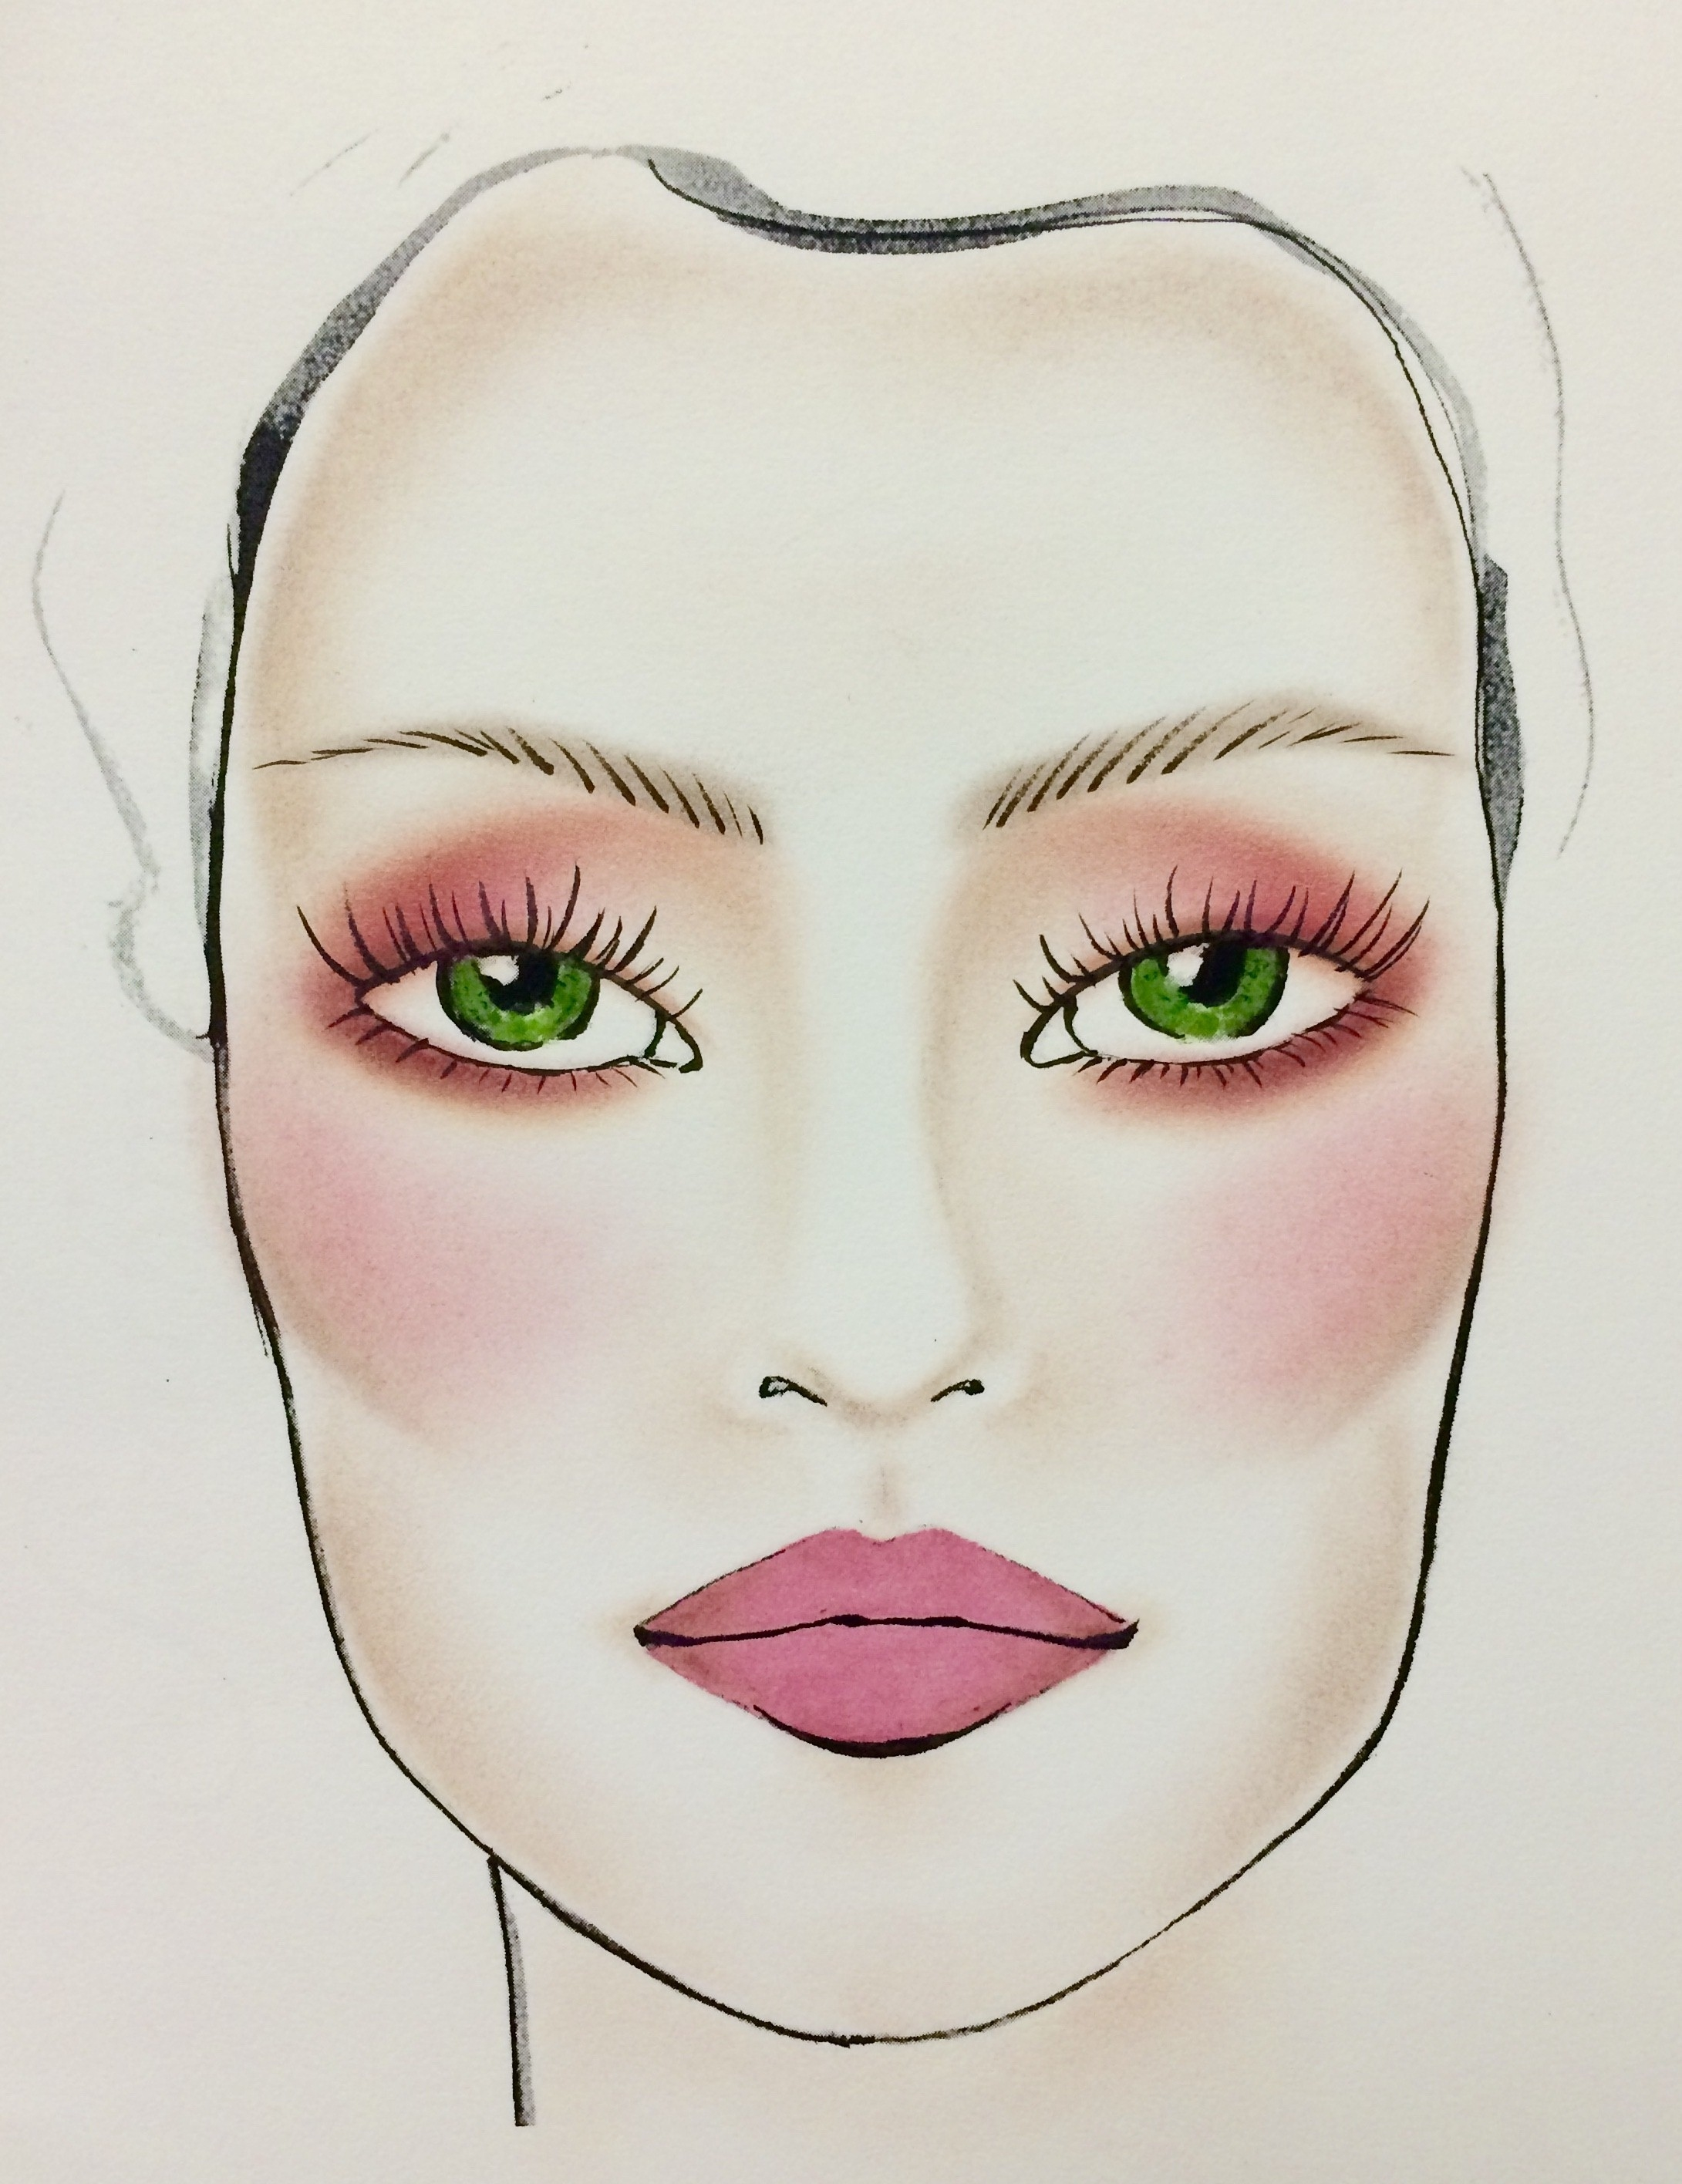 The Most Gorgeous Makeup For Green Eyes | Huffpost Life intended for What Color Eyeshadow For Green Eyes And Pale Skin